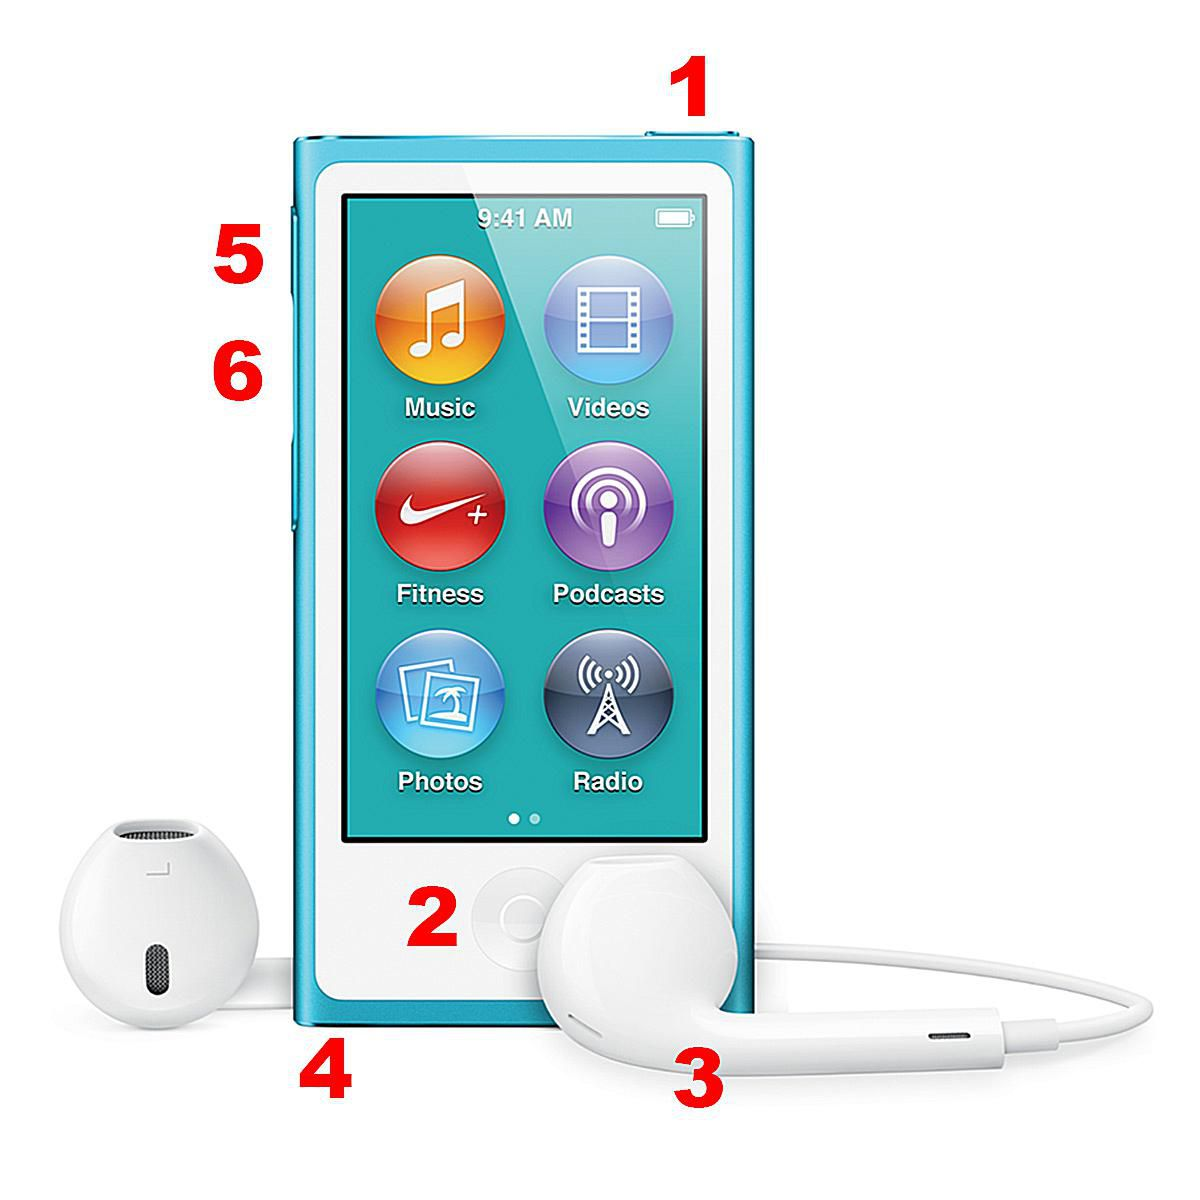 Anatomy Of The 7th Generation Ipod Nano Hardware Wiring Diagram For Shuffle Port